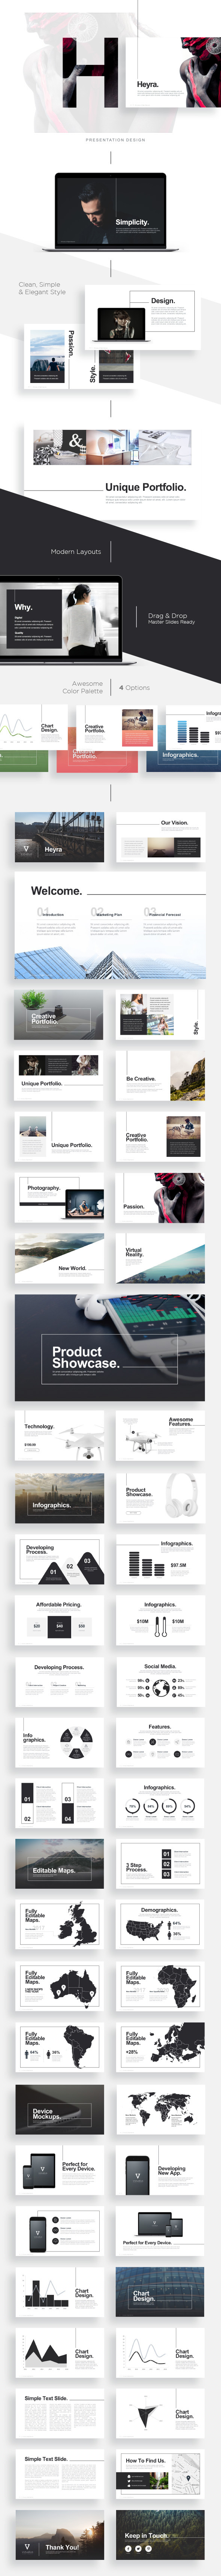 Heyra Powerpoint Template - PowerPoint Templates Presentation Templates